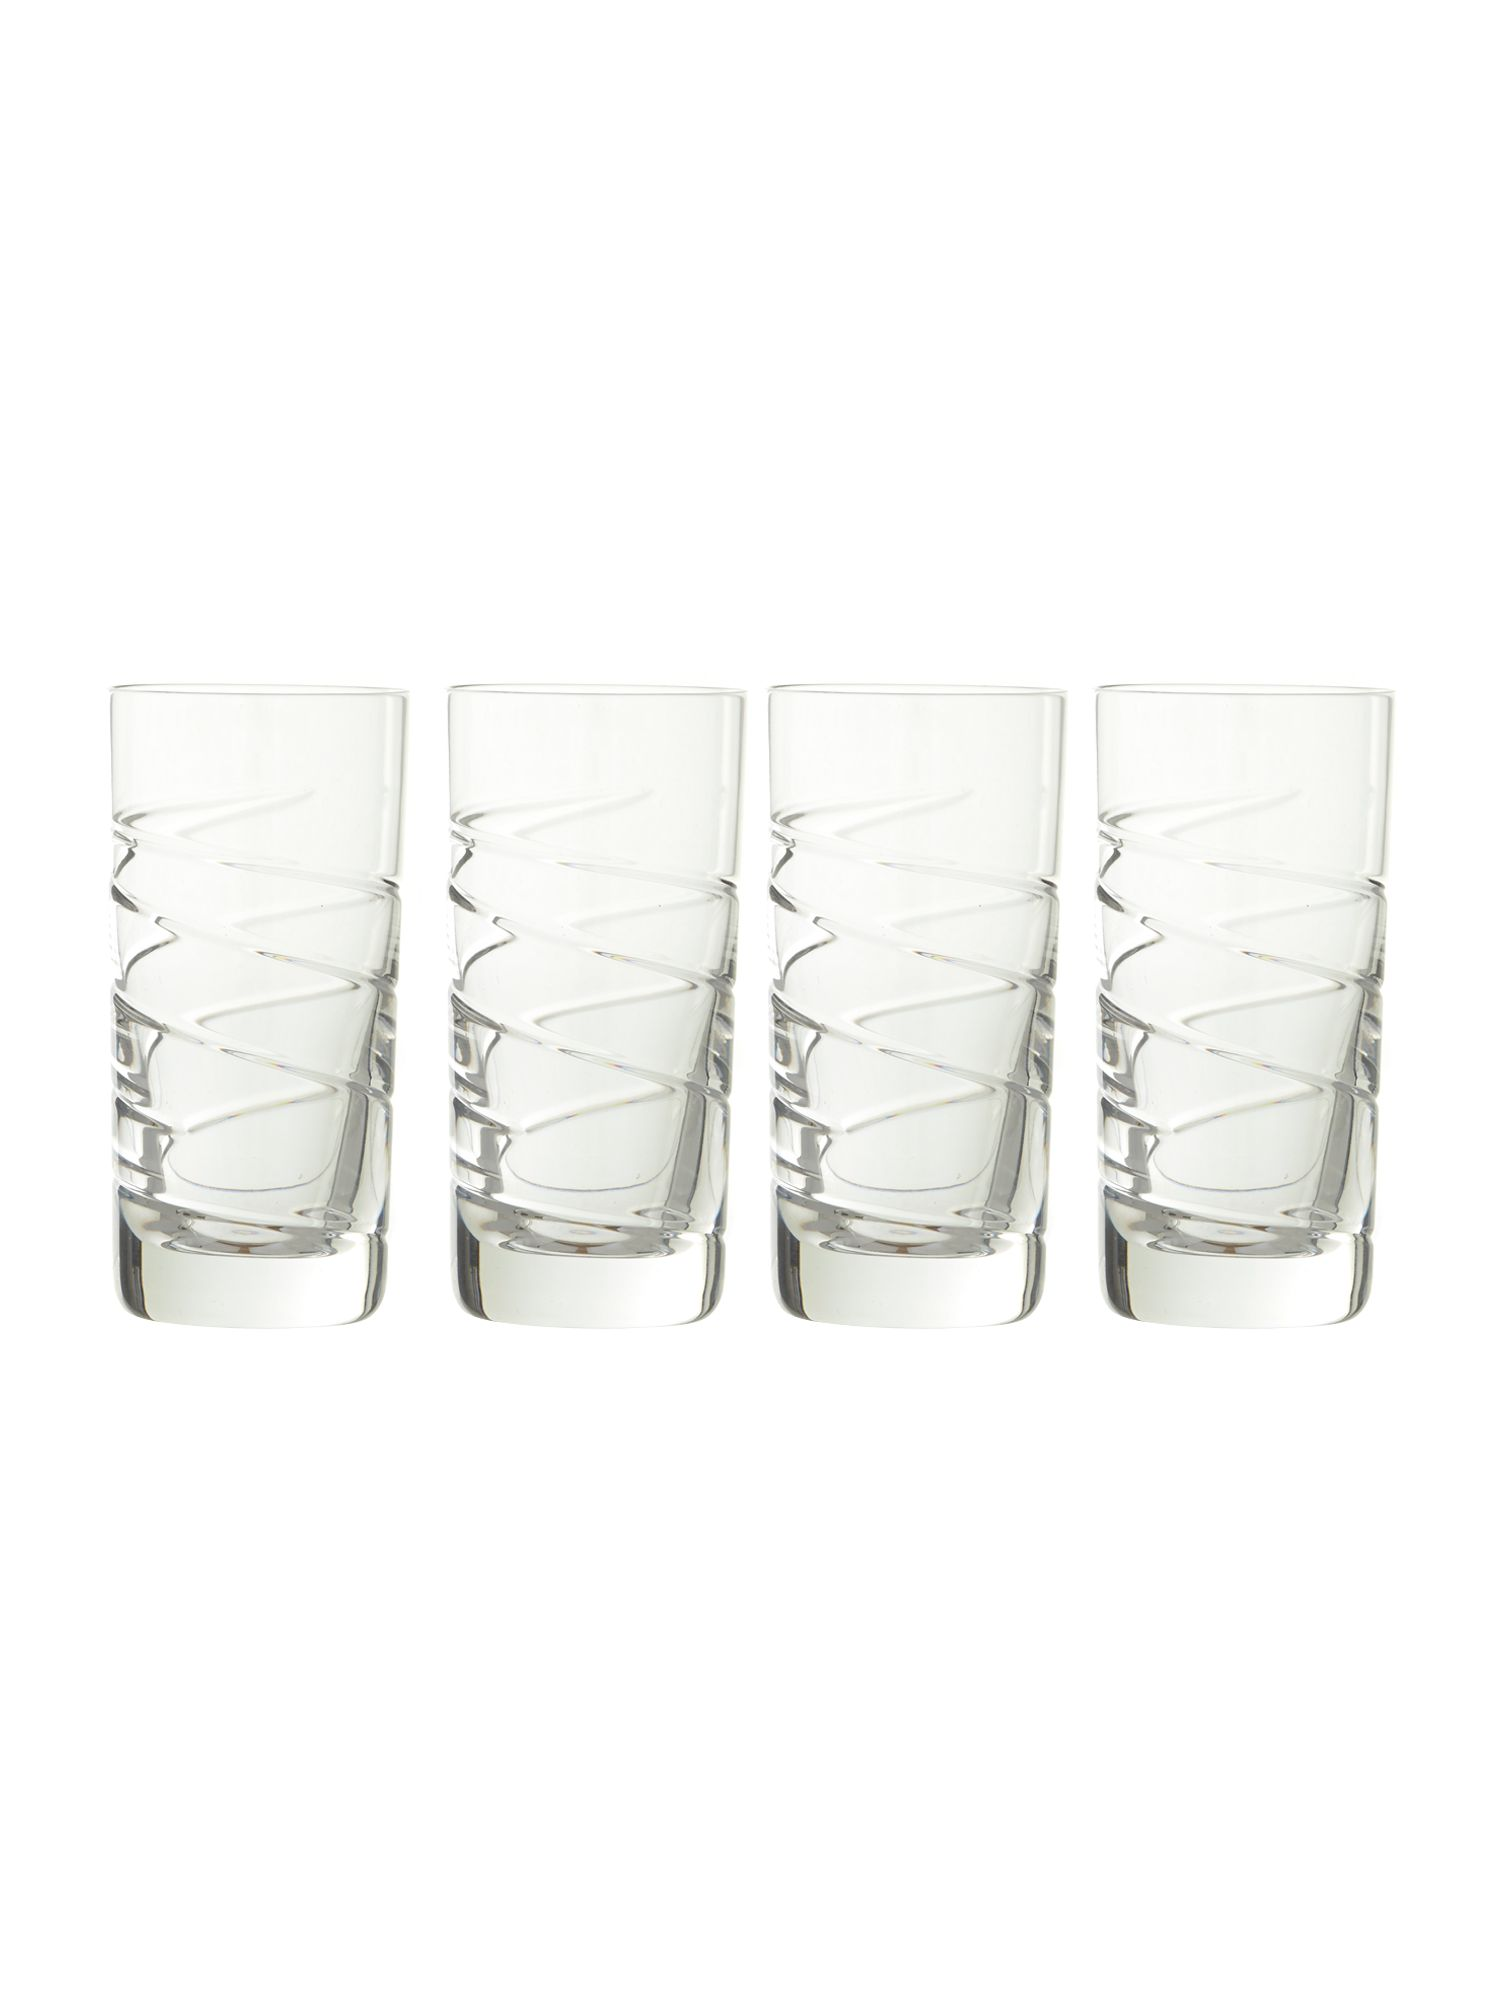 Swirl hi ball glasses, box of 4